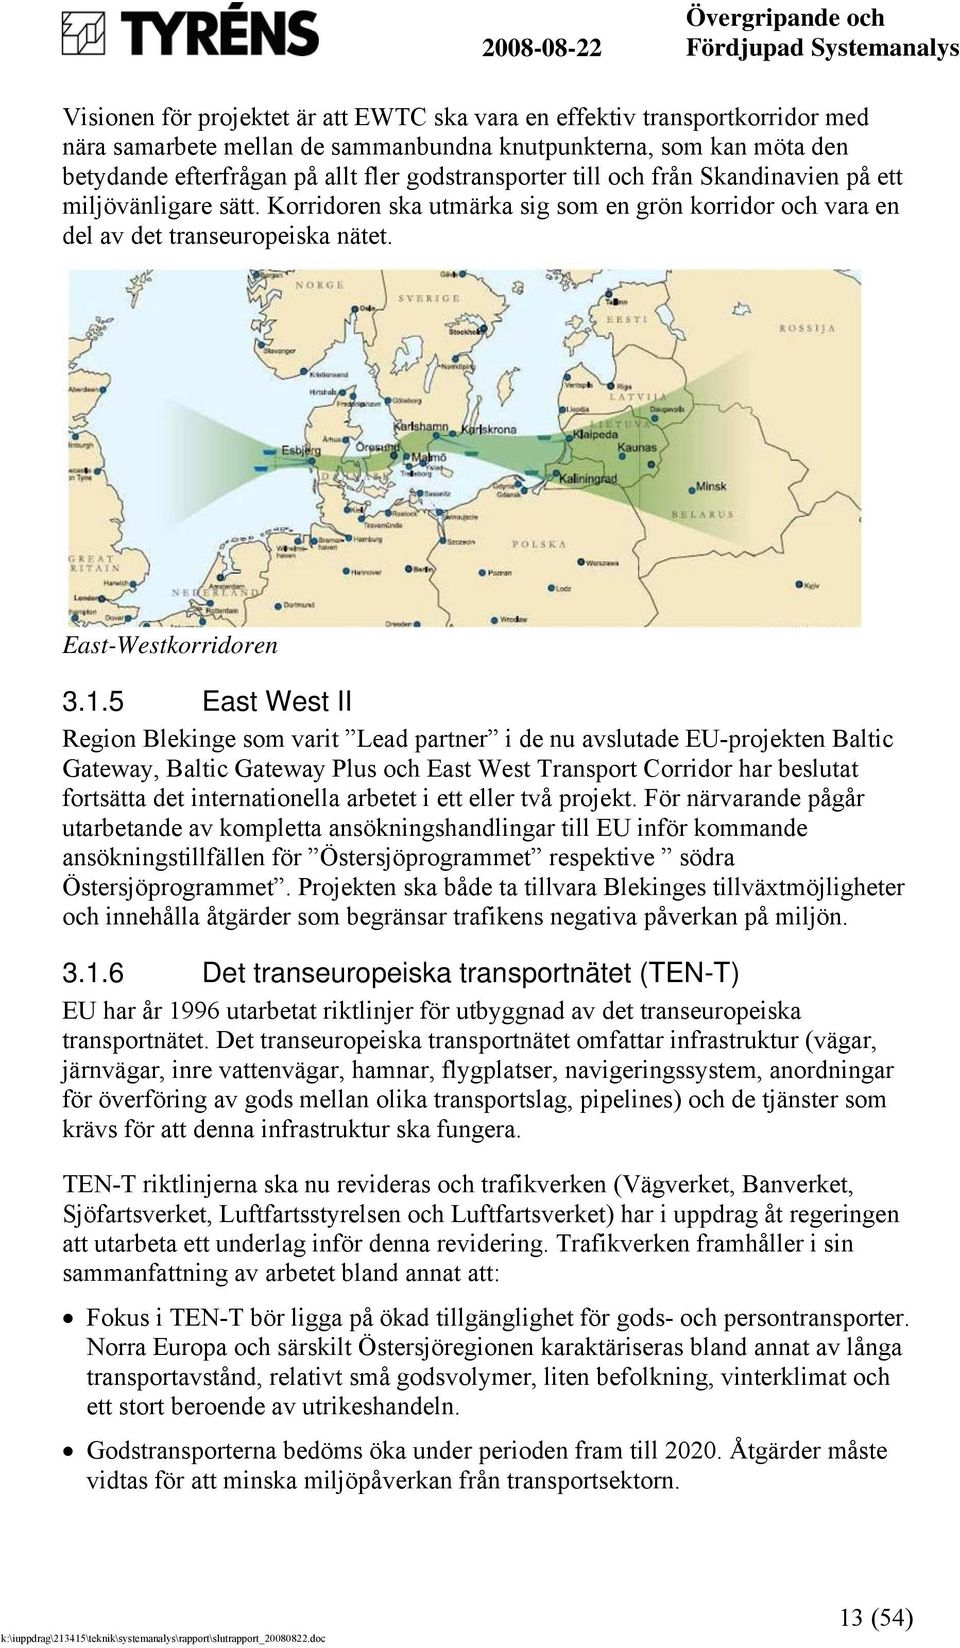 5 East West II Region Blekinge som varit Lead partner i de nu avslutade EU-projekten Baltic Gateway, Baltic Gateway Plus och East West Transport Corridor har beslutat fortsätta det internationella